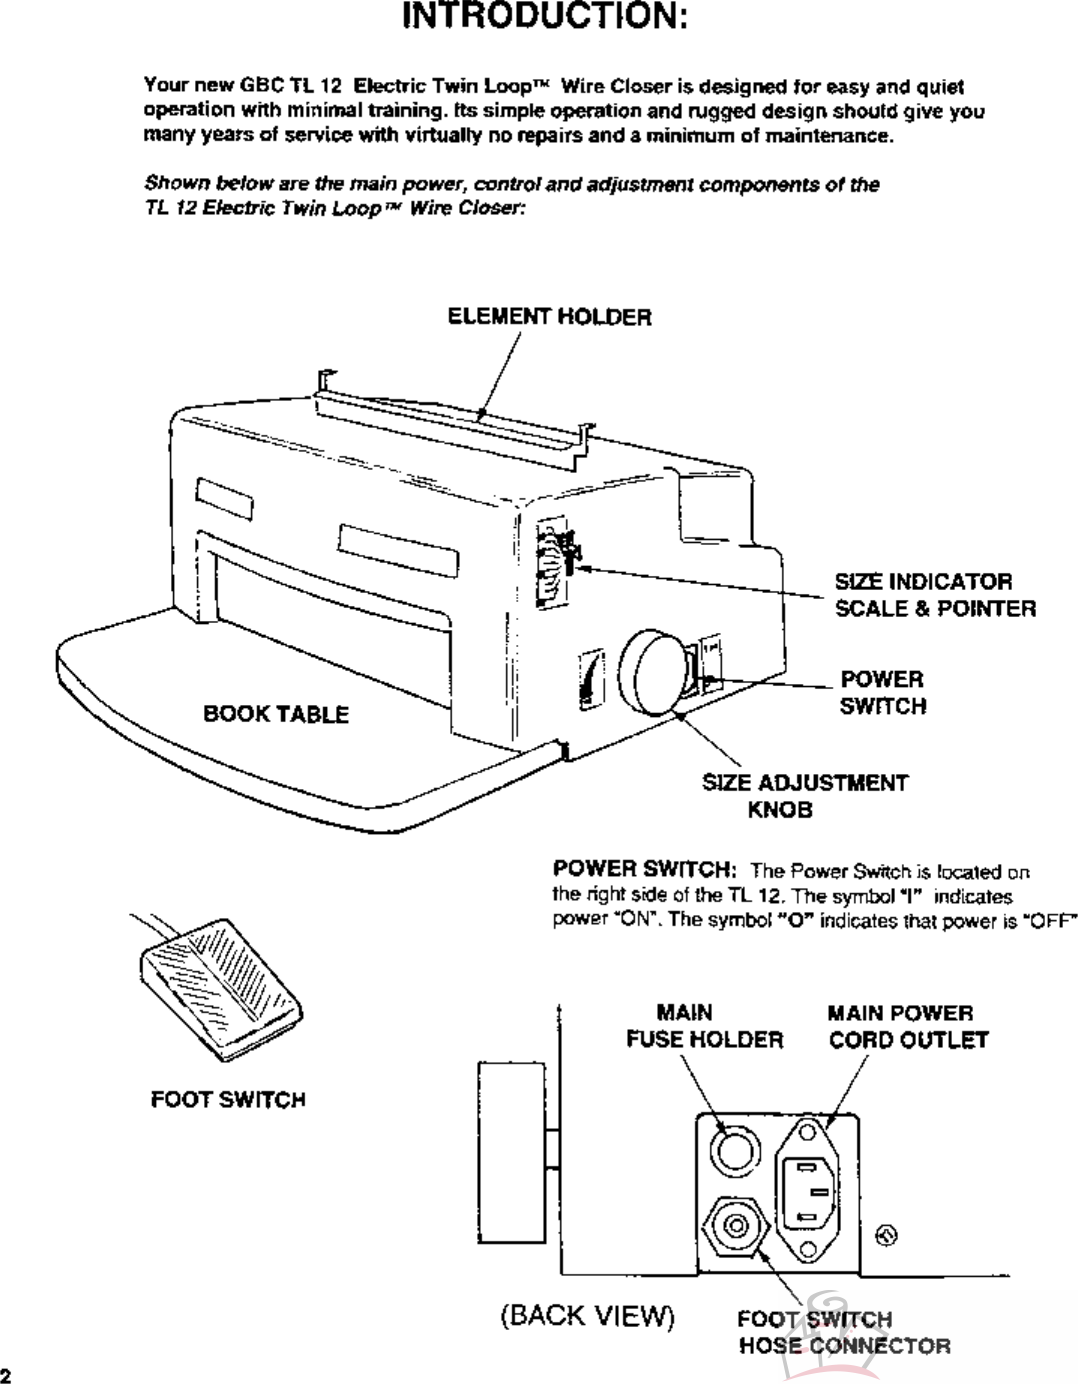 page 7 of 9 - mybinding gbc-tl12-wire-closer-users-